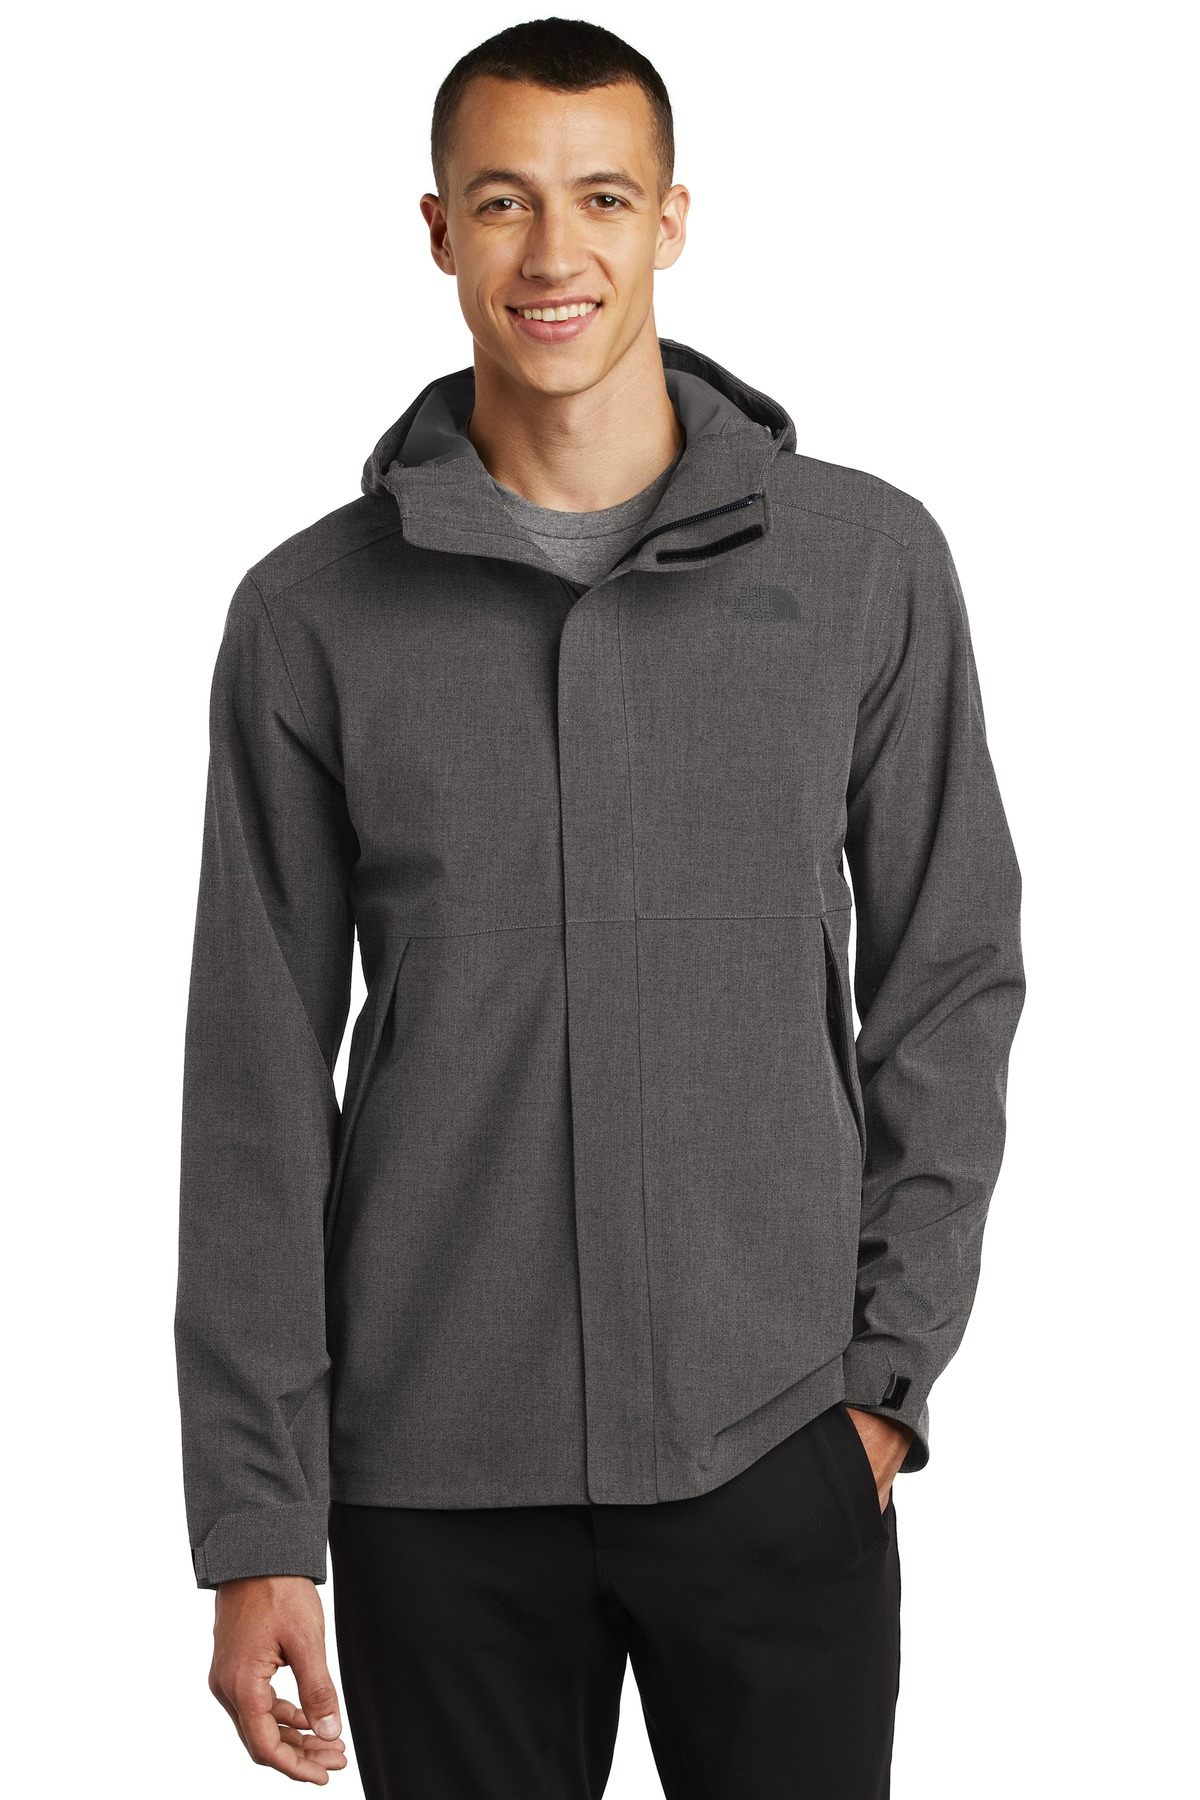 The North Face  ®  Apex DryVent  ™  Jacket NF0A47FI - TNF Dark Grey Heather